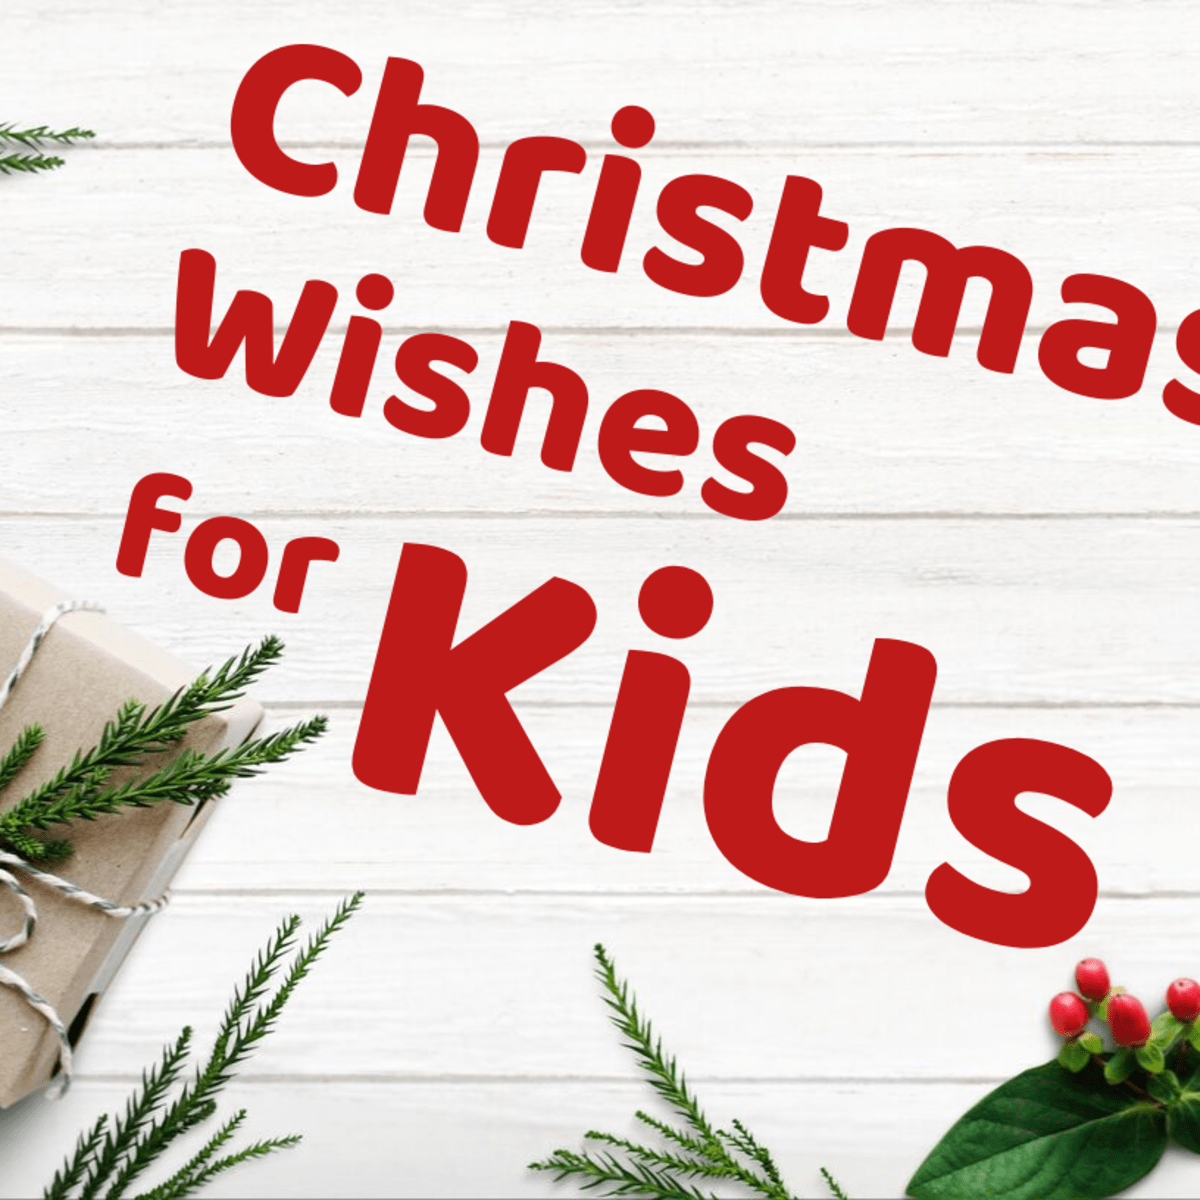 What To Write In Christmas Cards For Kids Holidappy Celebrations